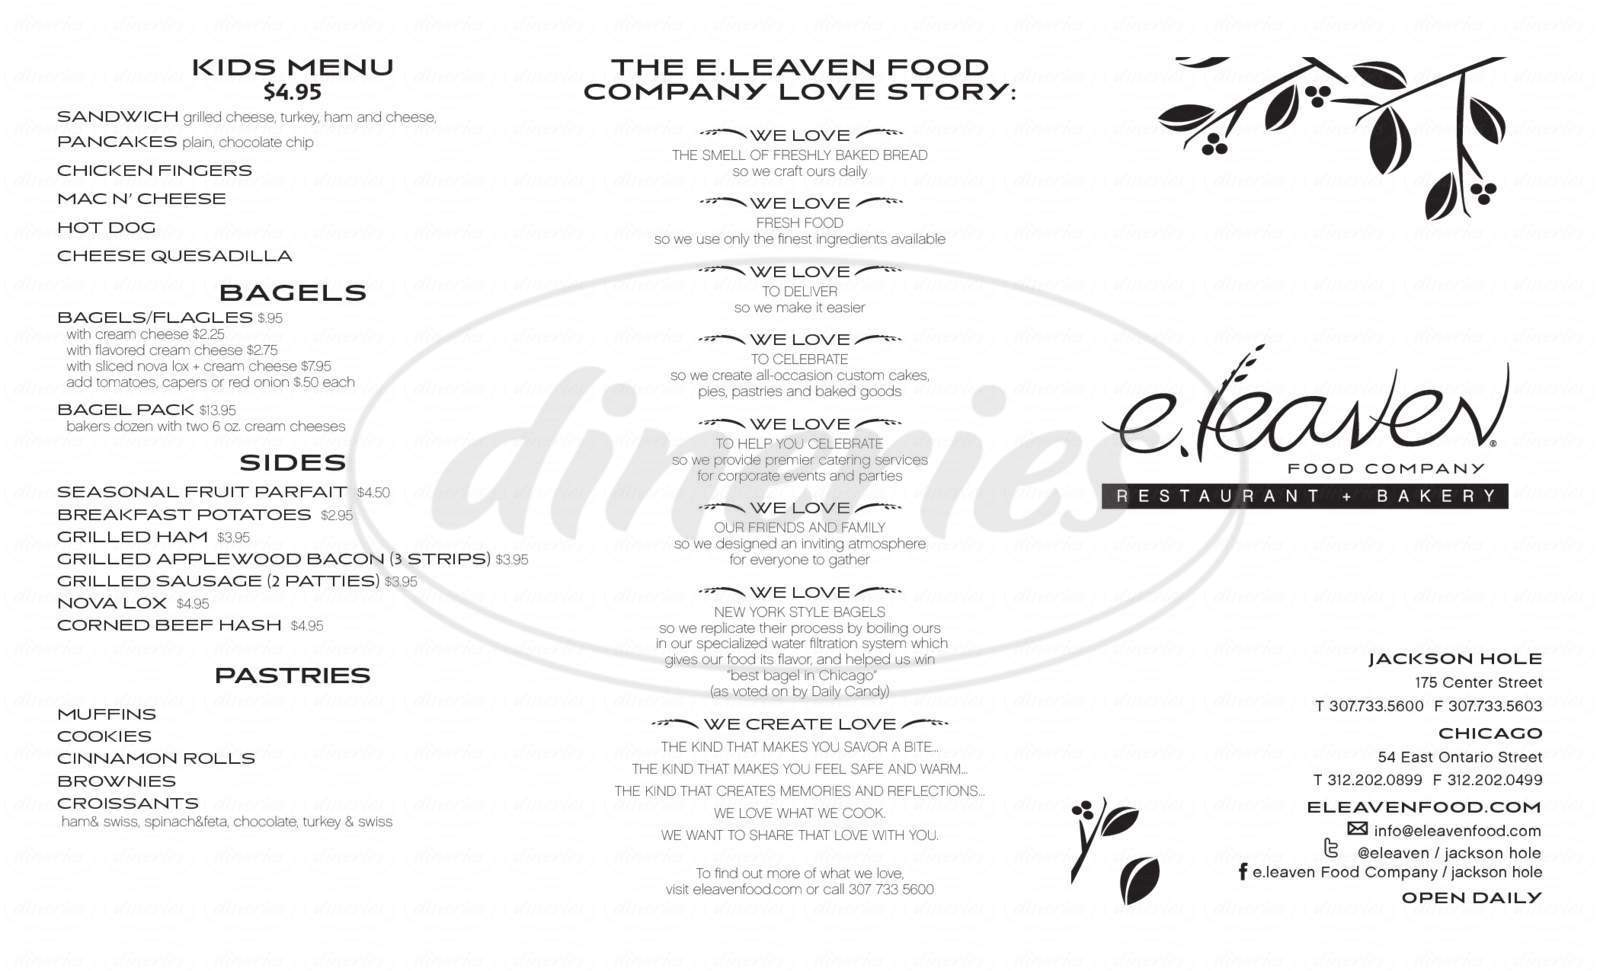 menu for Eleaven Food Company